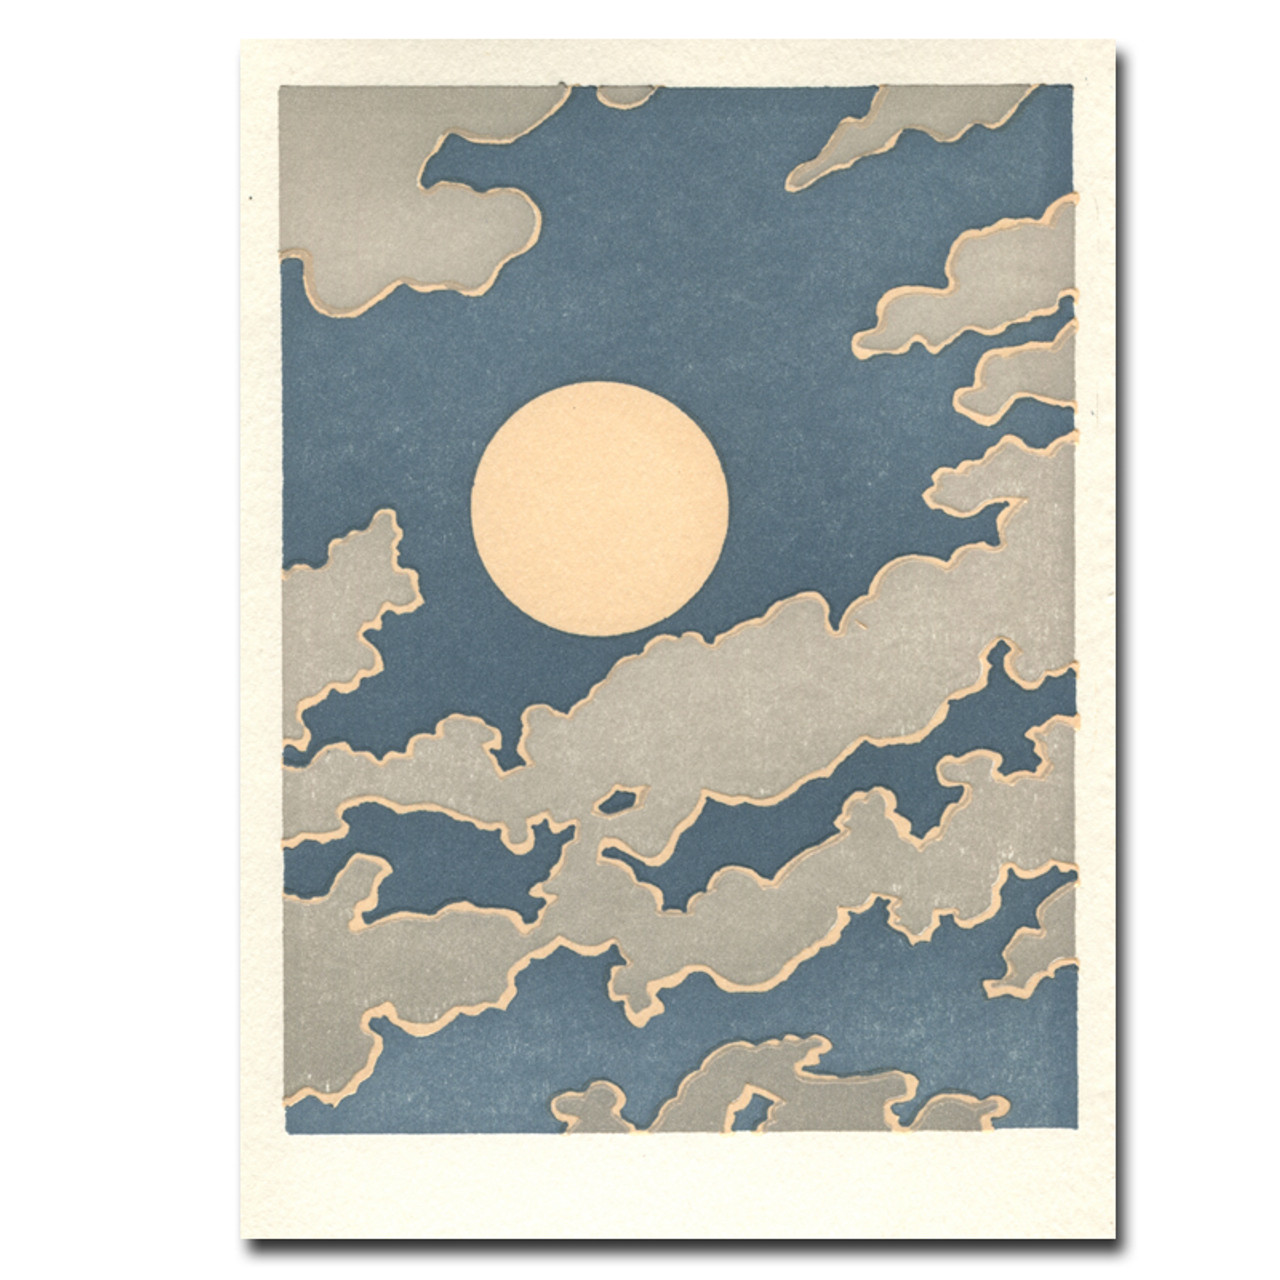 Saturn Press letterpress card Partly Cloudy shows the moon against a backdrop of clouds